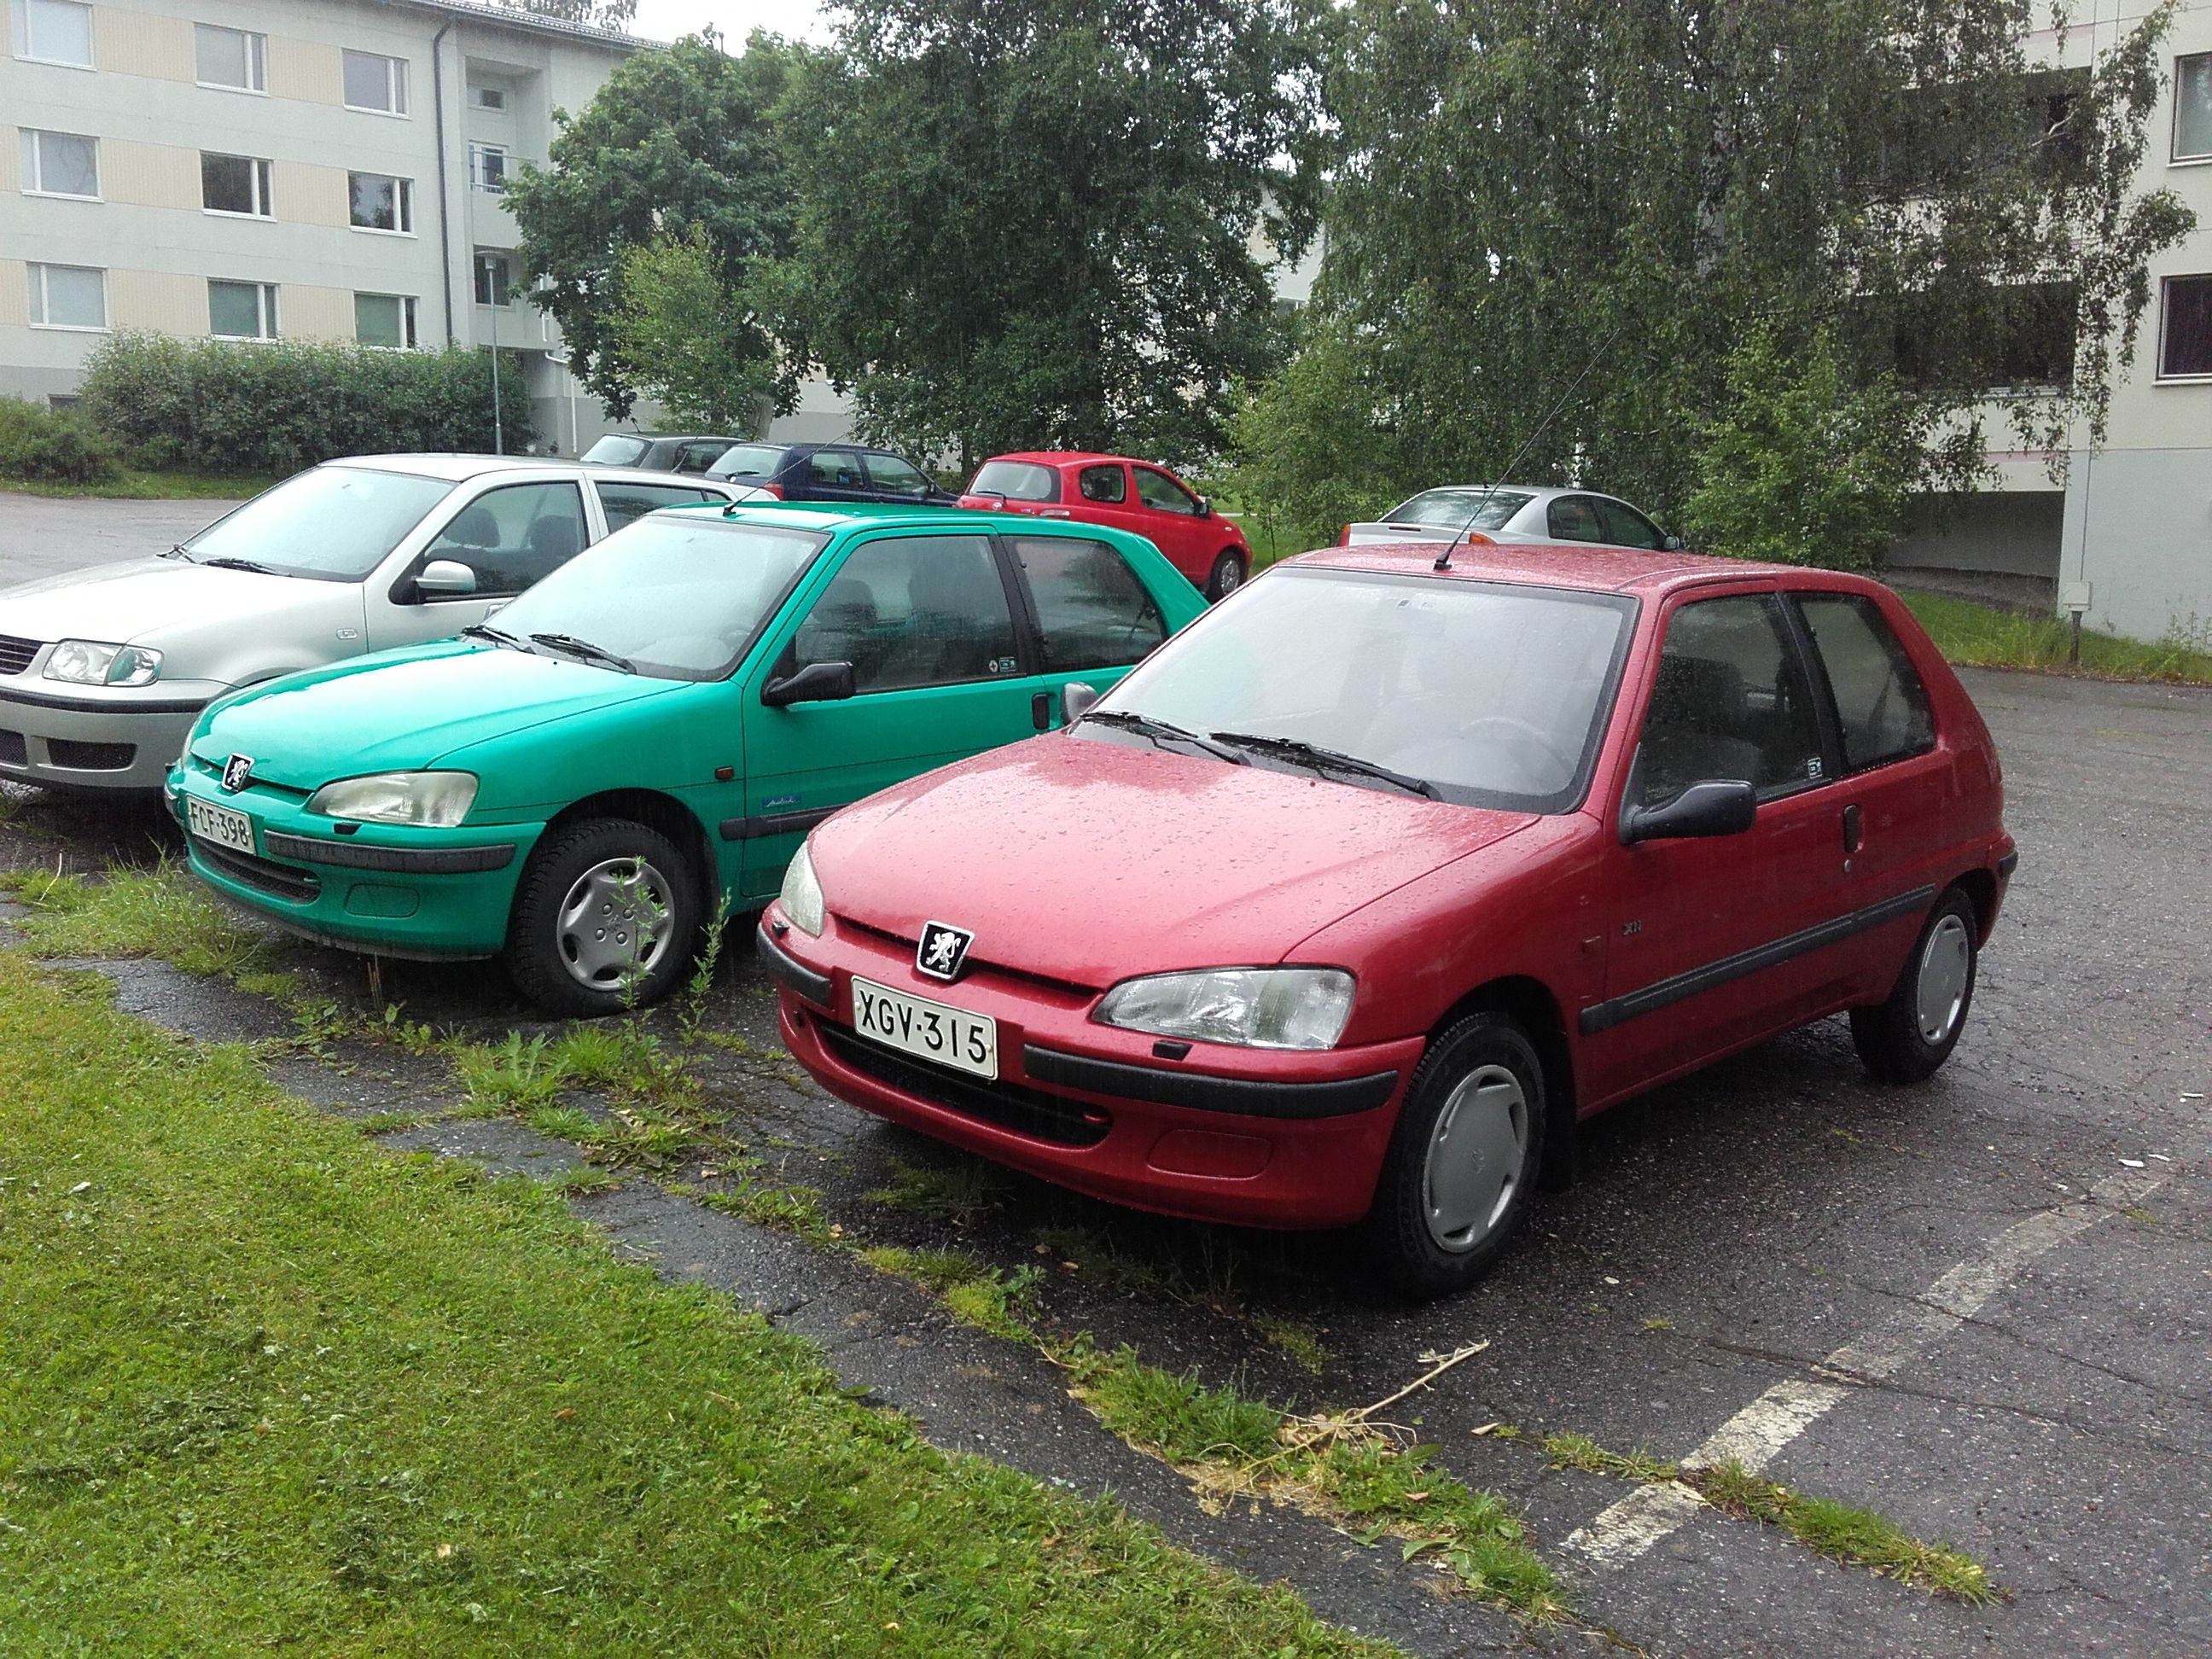 my peugeot 106 xn 1996 red and neighbours 106 mistral green peugeot 106 citro n saxo ax. Black Bedroom Furniture Sets. Home Design Ideas